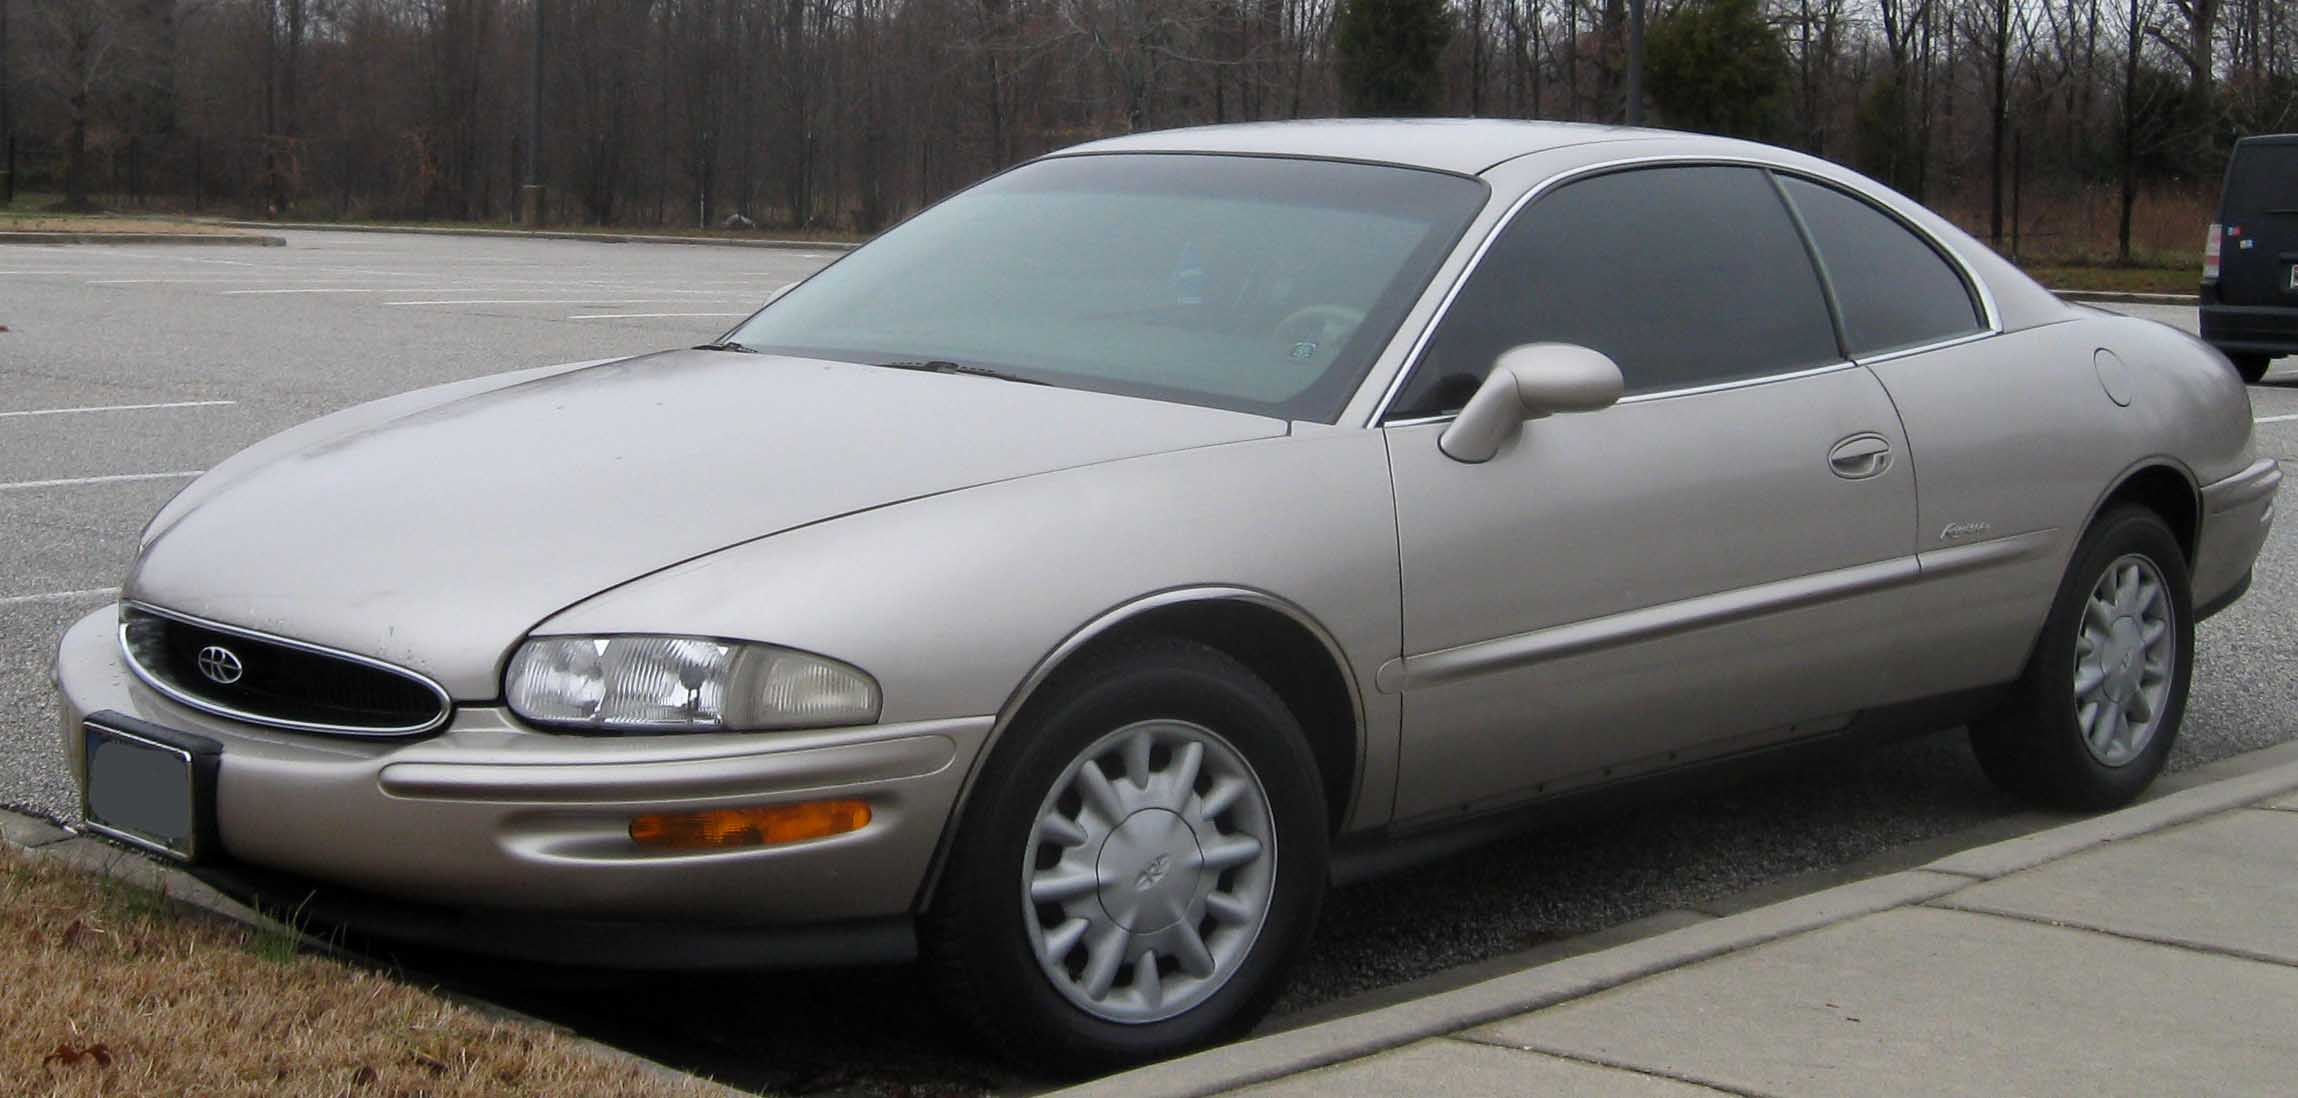 buick regal coupe 1995 images